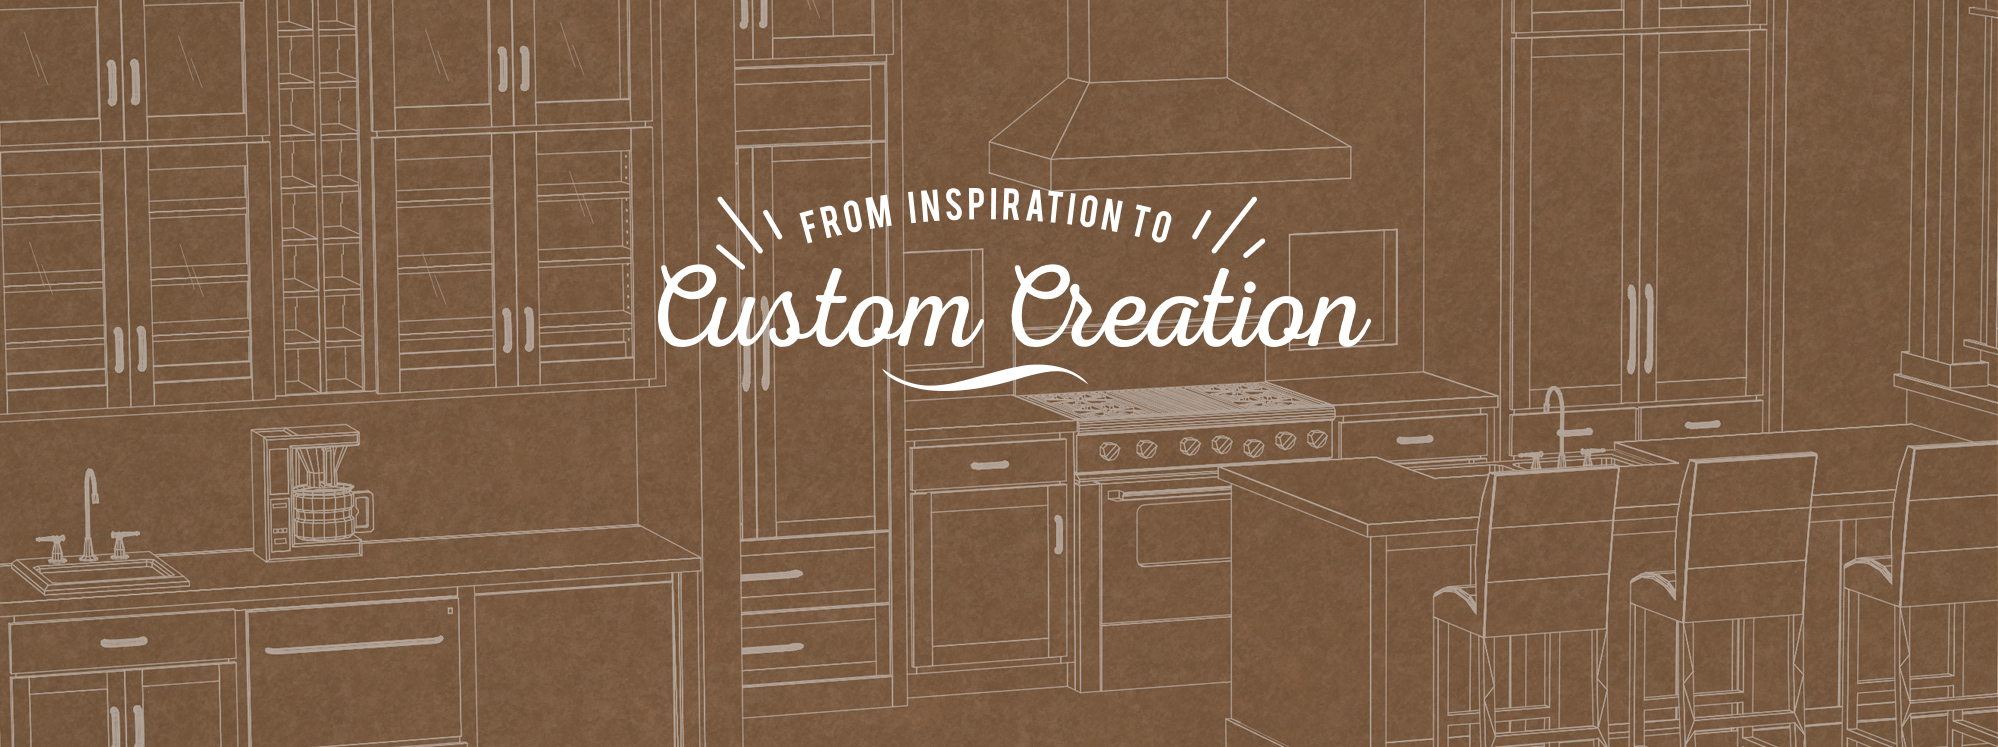 From Inspiration to Custom Creation